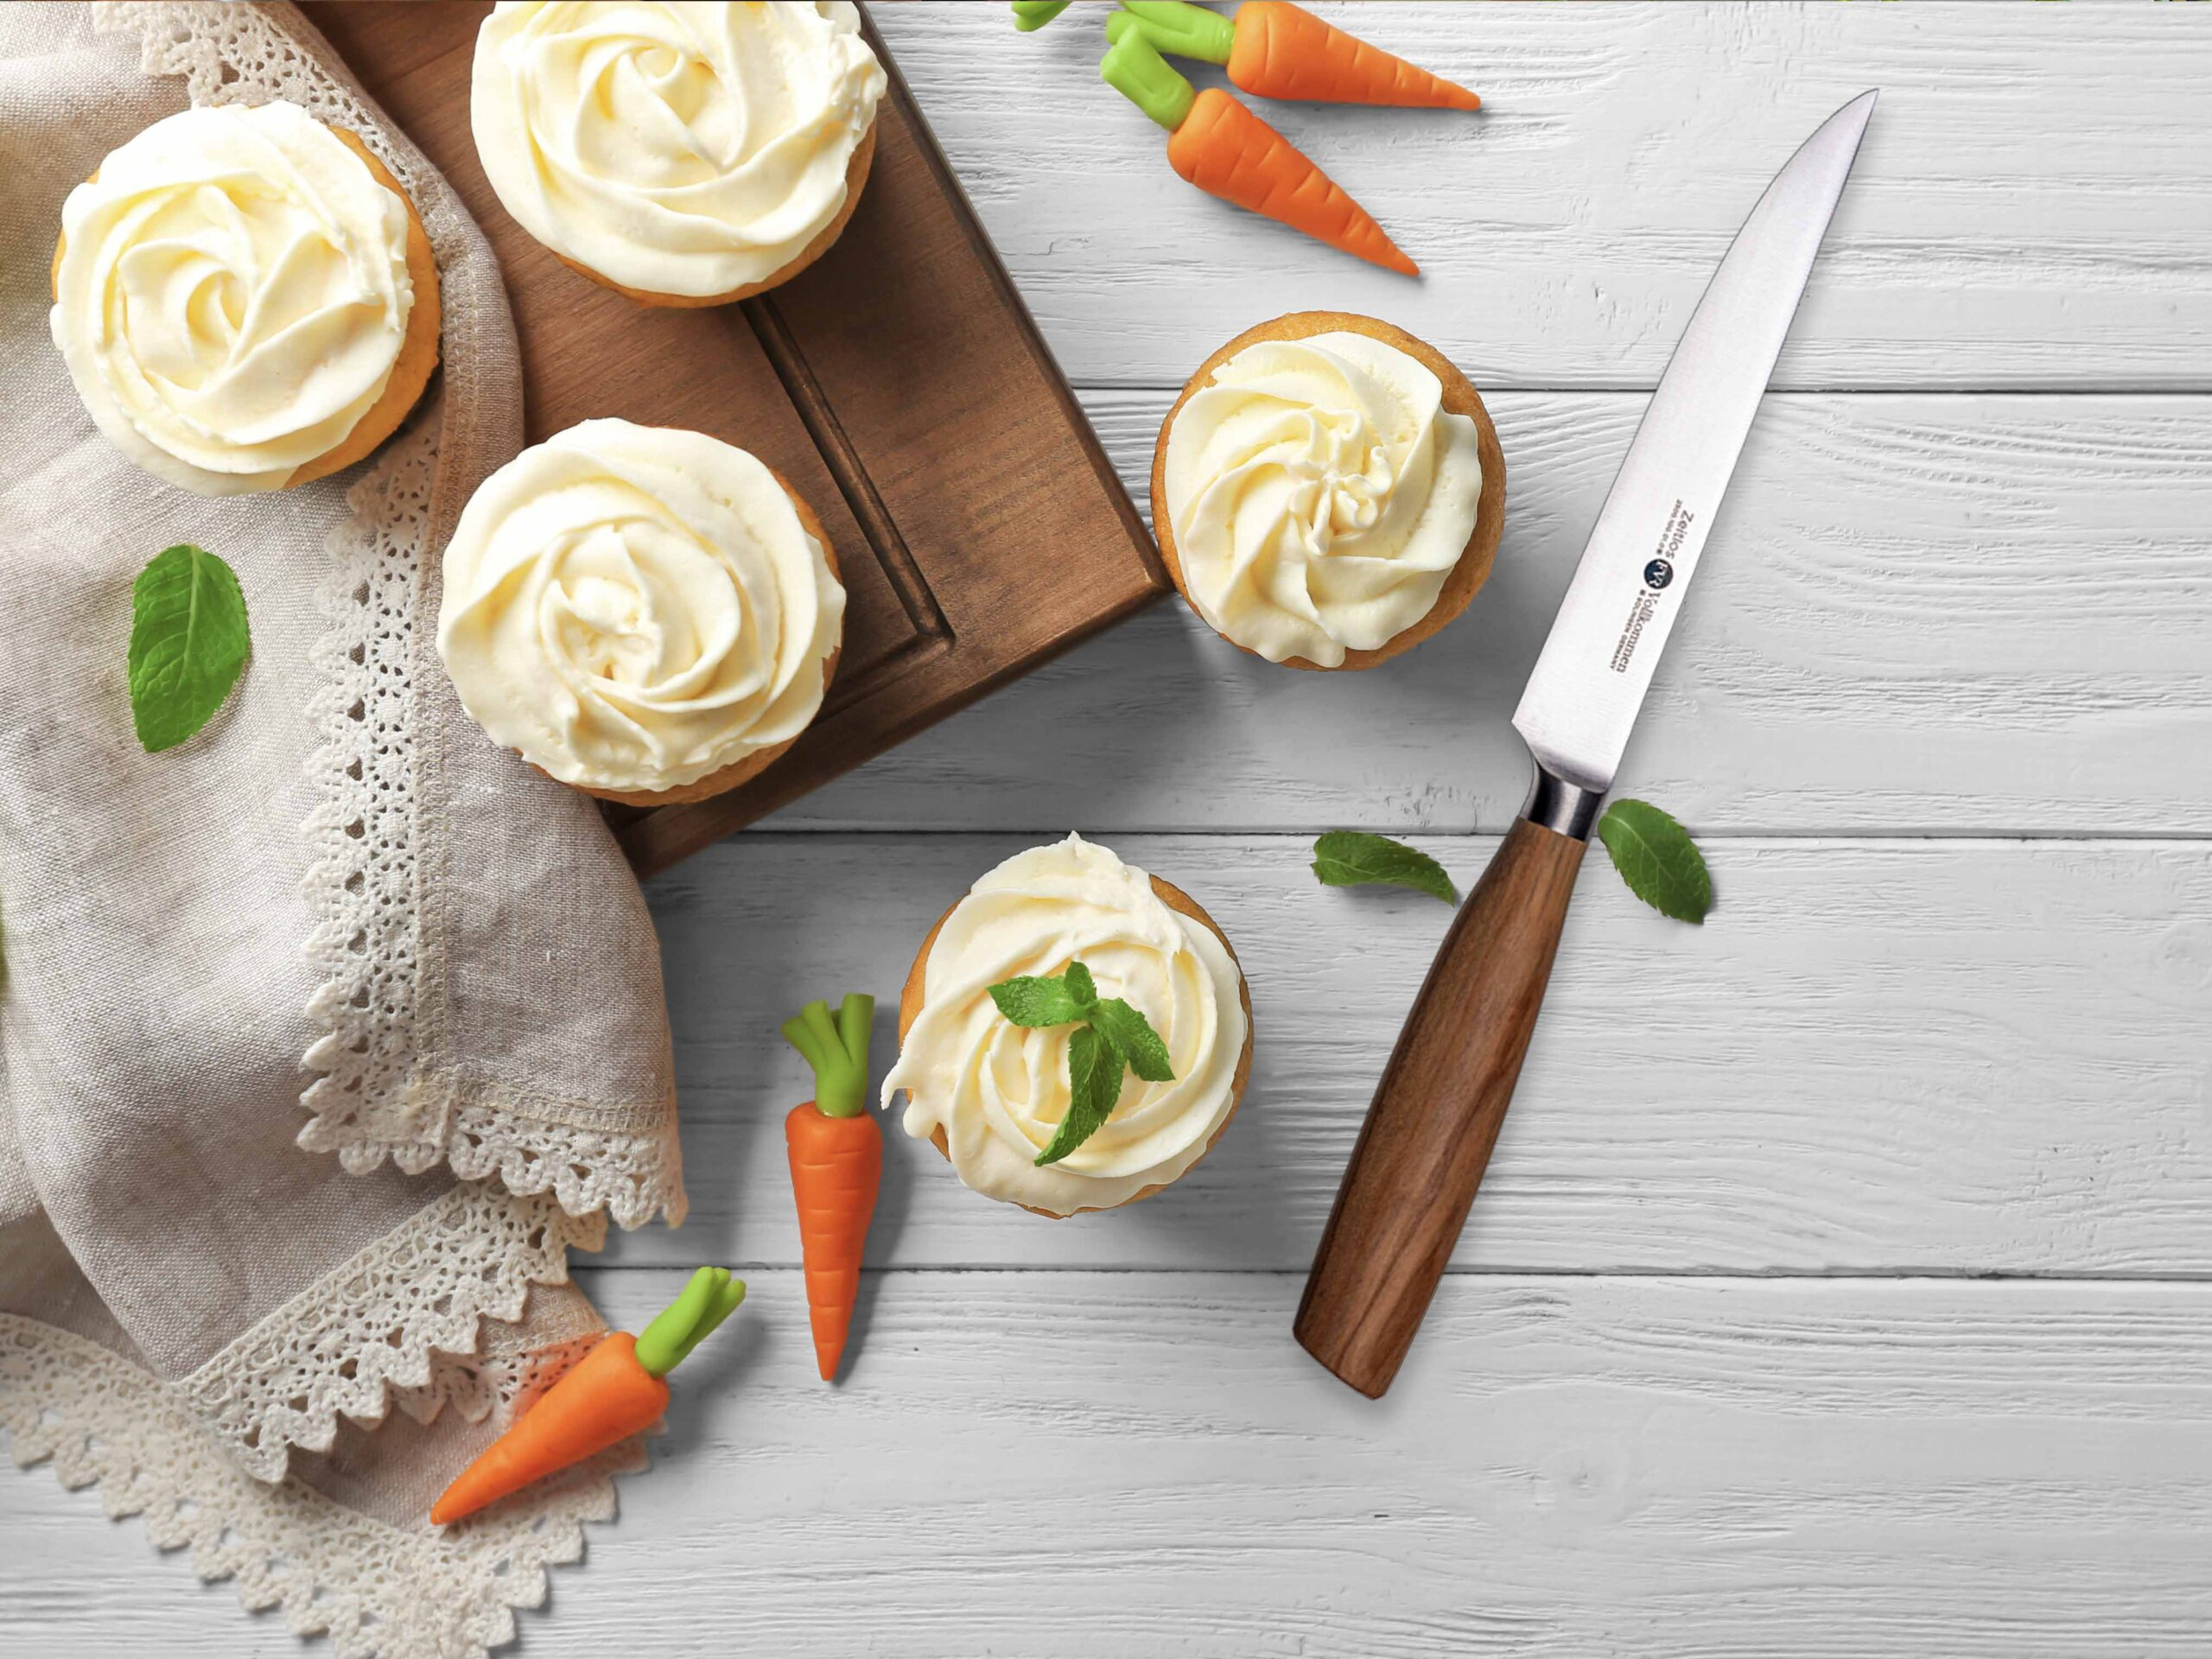 FVR Carrot Cupcakes